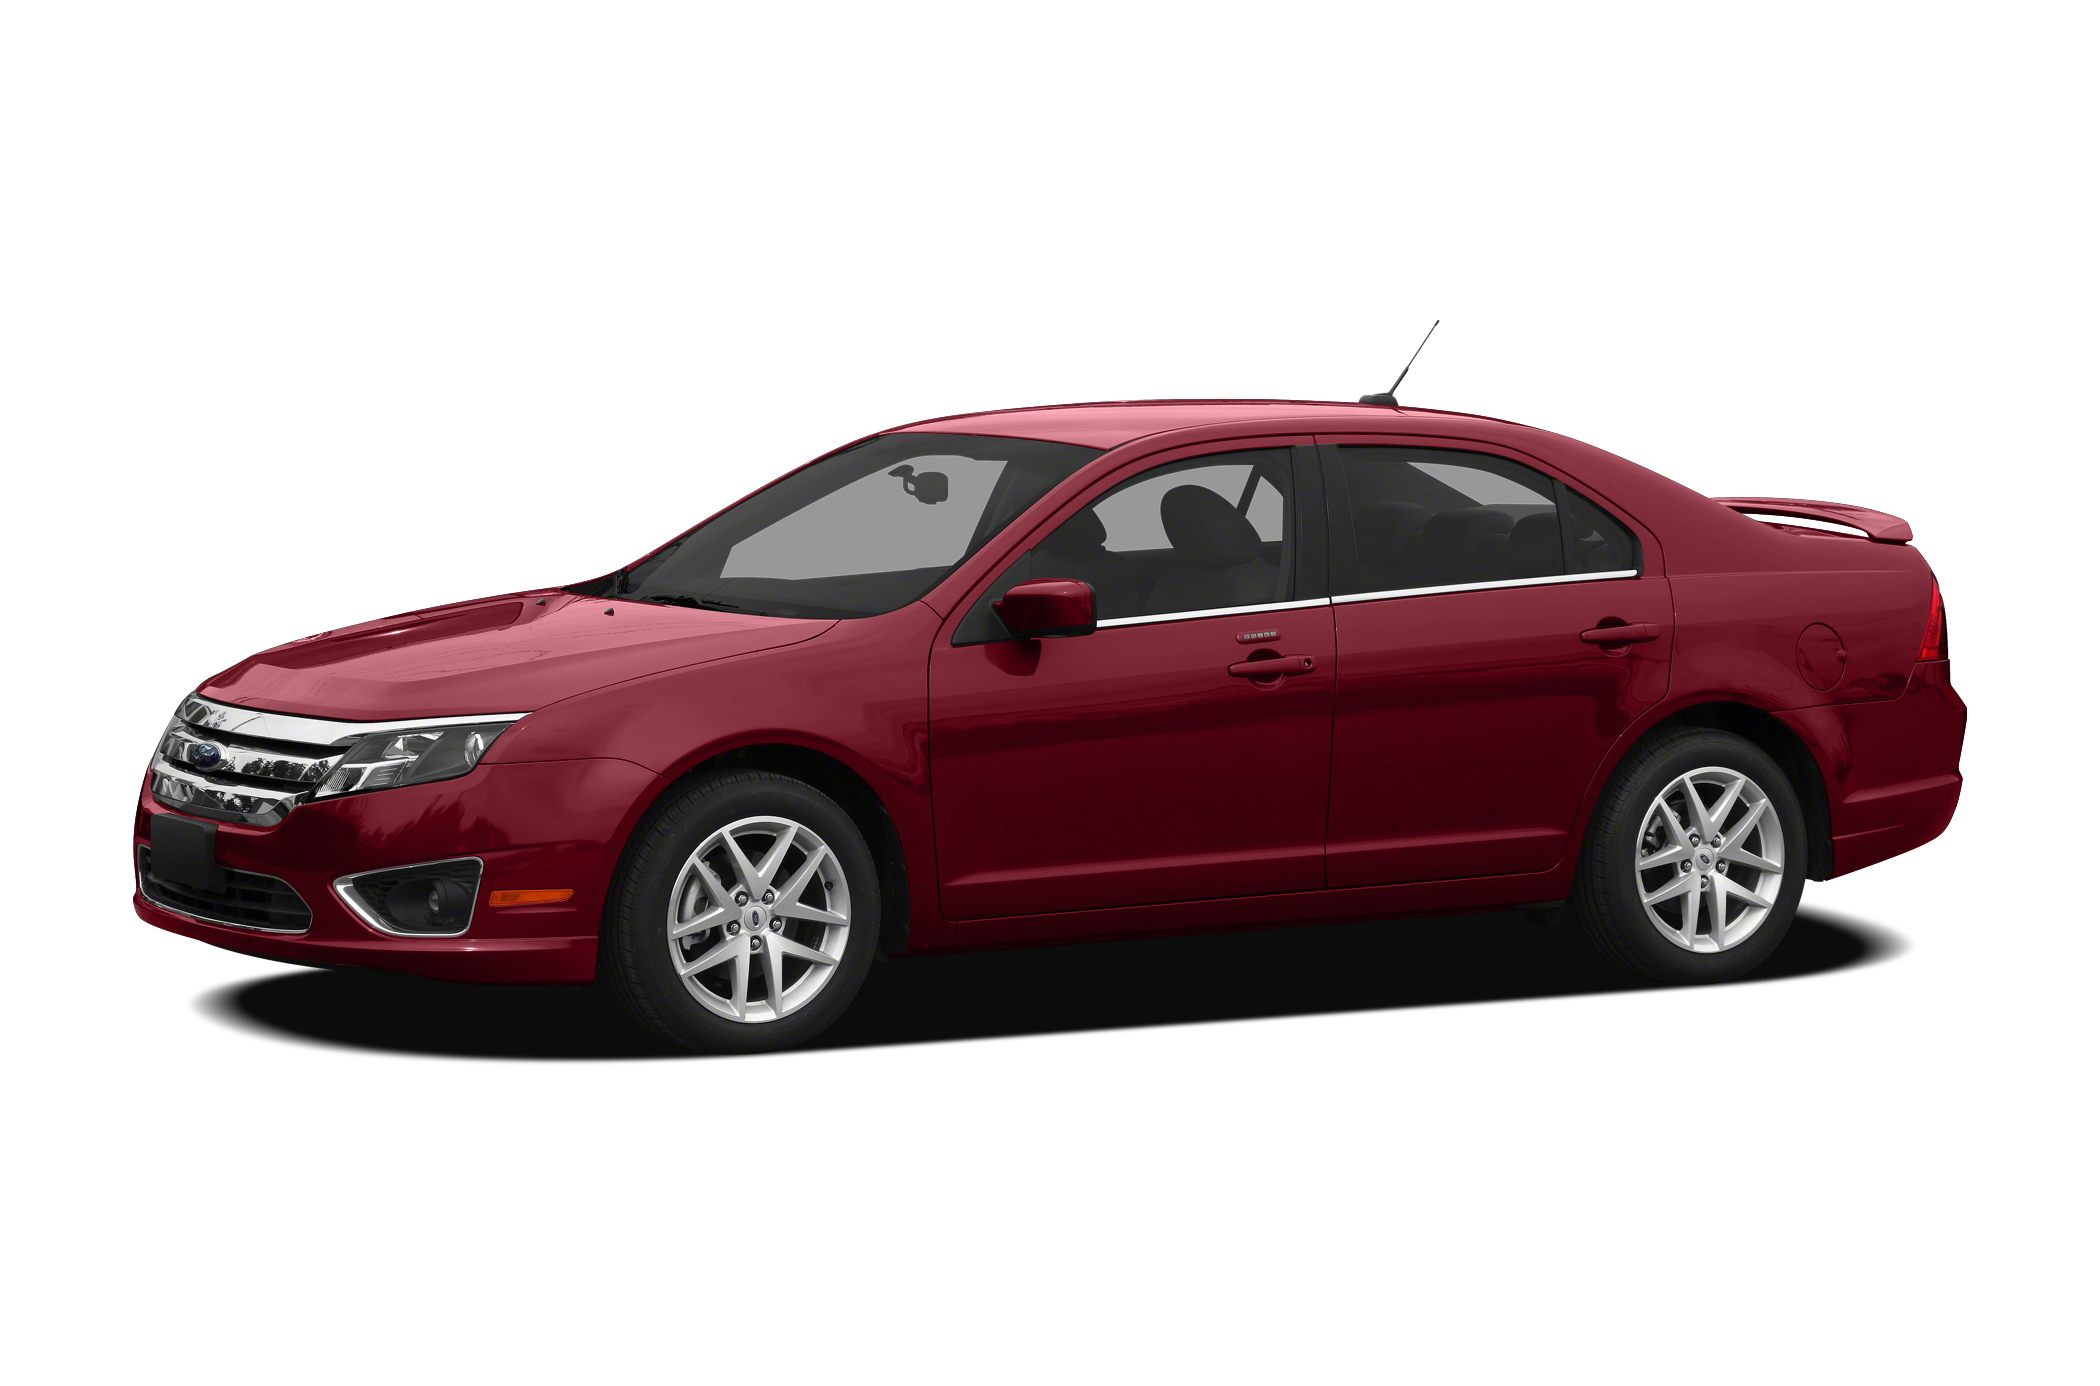 2010 Ford Fusion SE Sedan for sale in Mechanicville for $12,990 with 59,298 miles.